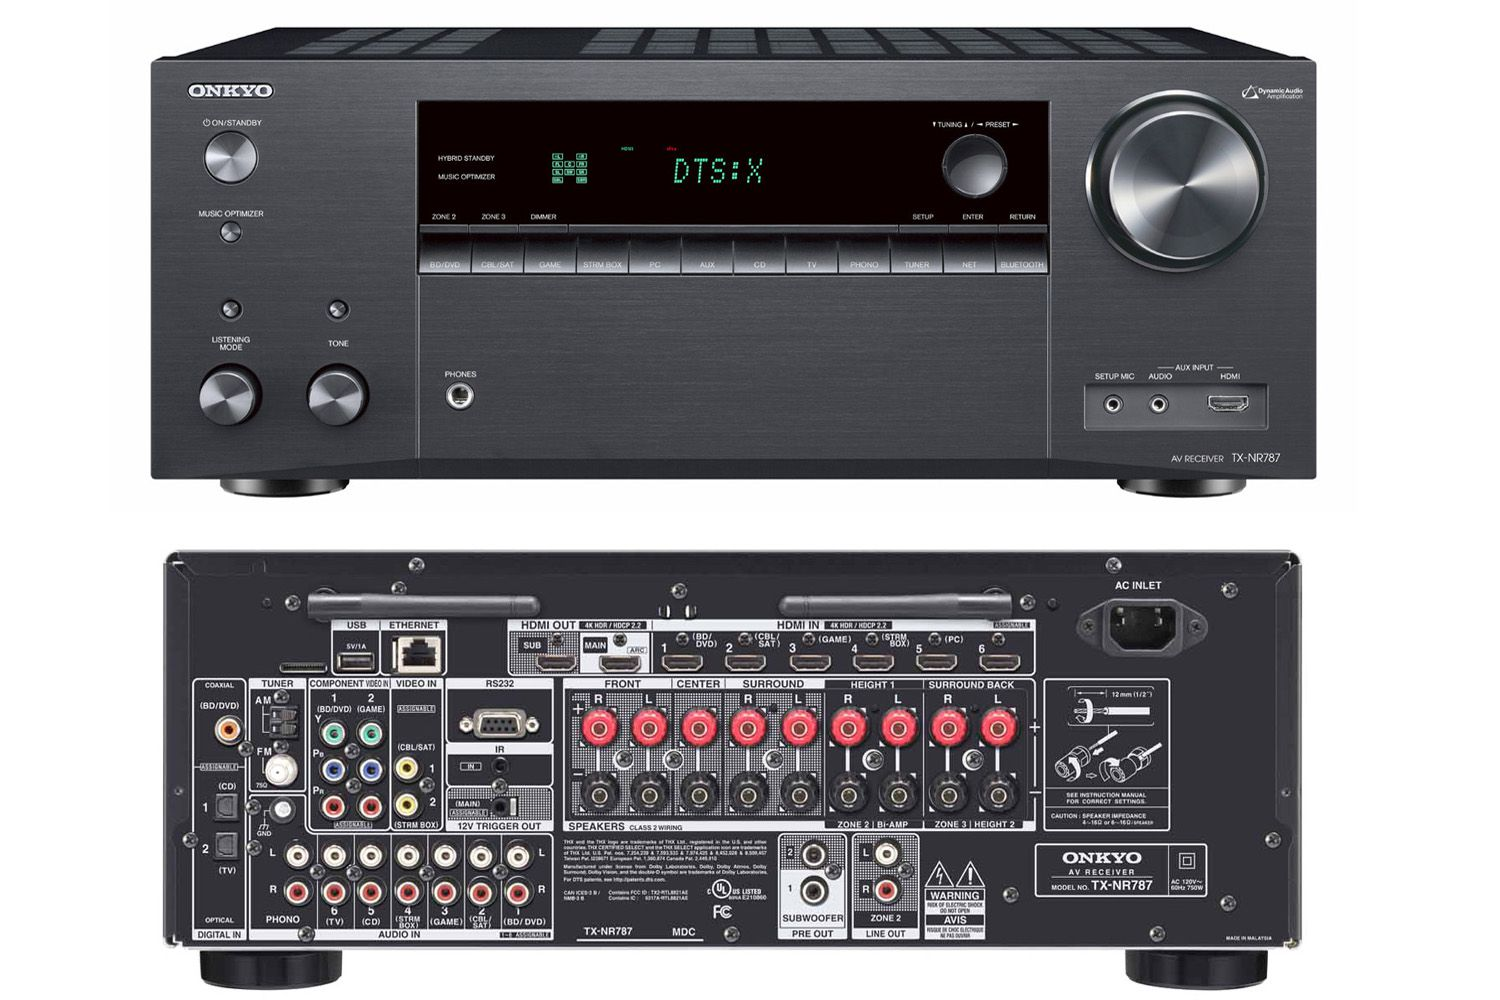 Find out what all those connections are on home theater/surround sound/av receivers